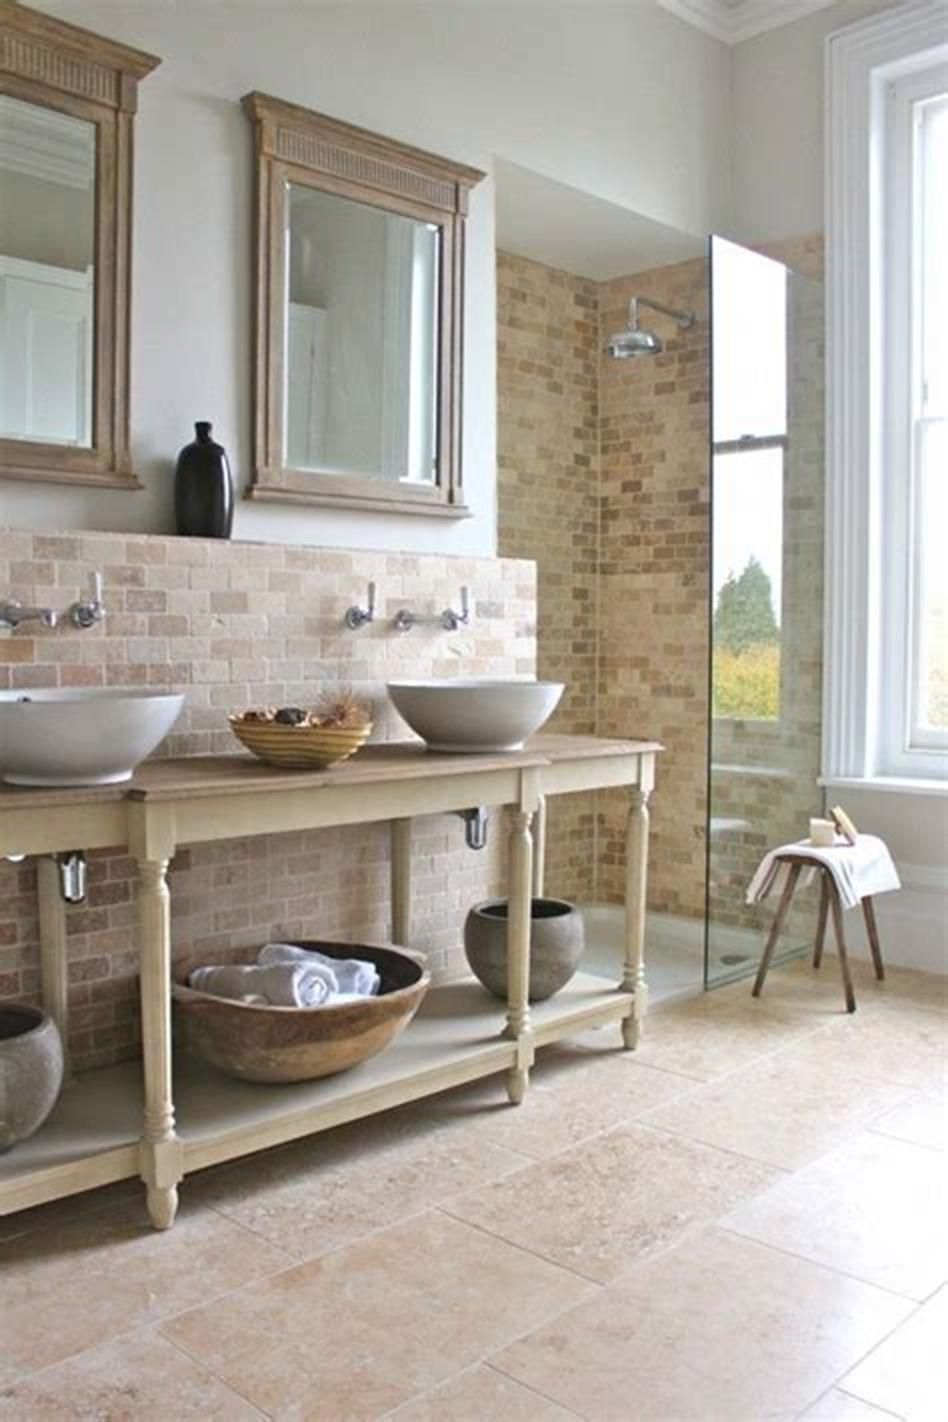 Rustikale Bäder 50 Best Modern Country Bathroom Design And Decor Ideas For 2019 18 | Rustikale Moderne Bäder, Ländliche Badezimmer, Bad Styling